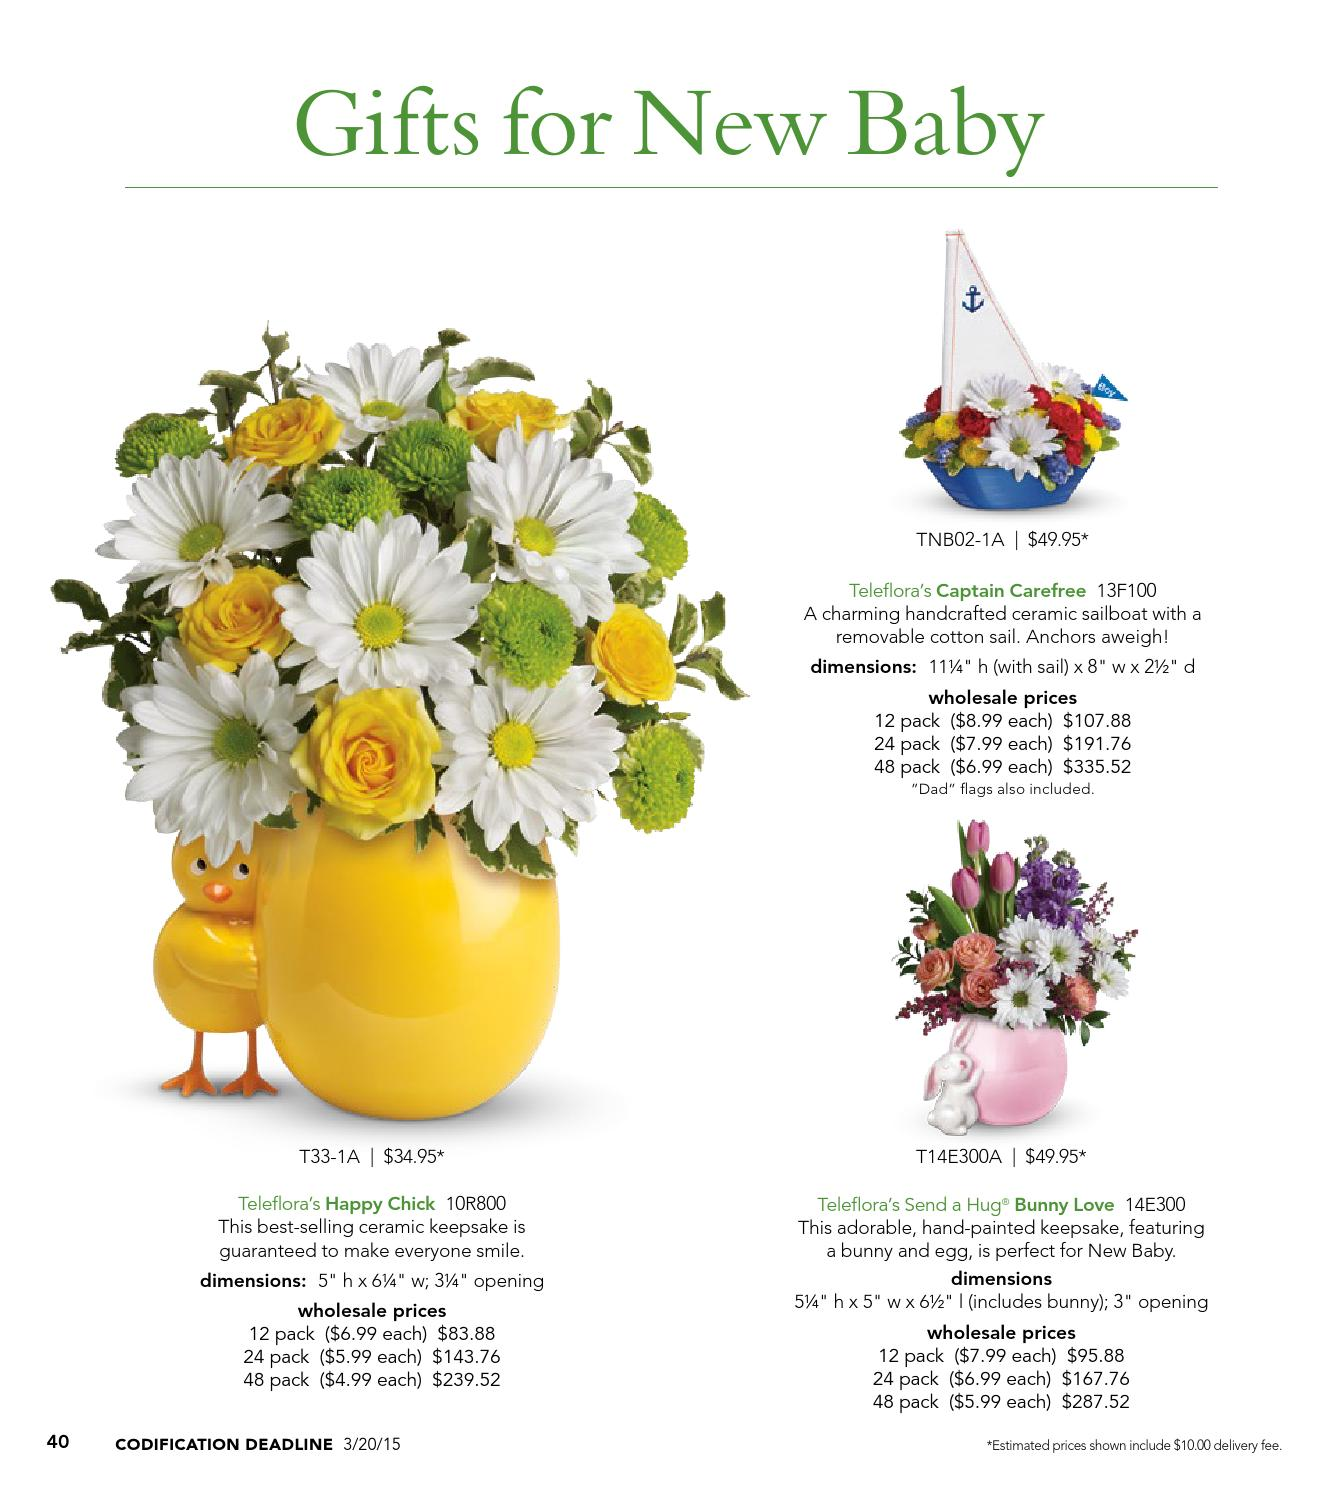 January 2015 Resource Guide US by Teleflora - issuu